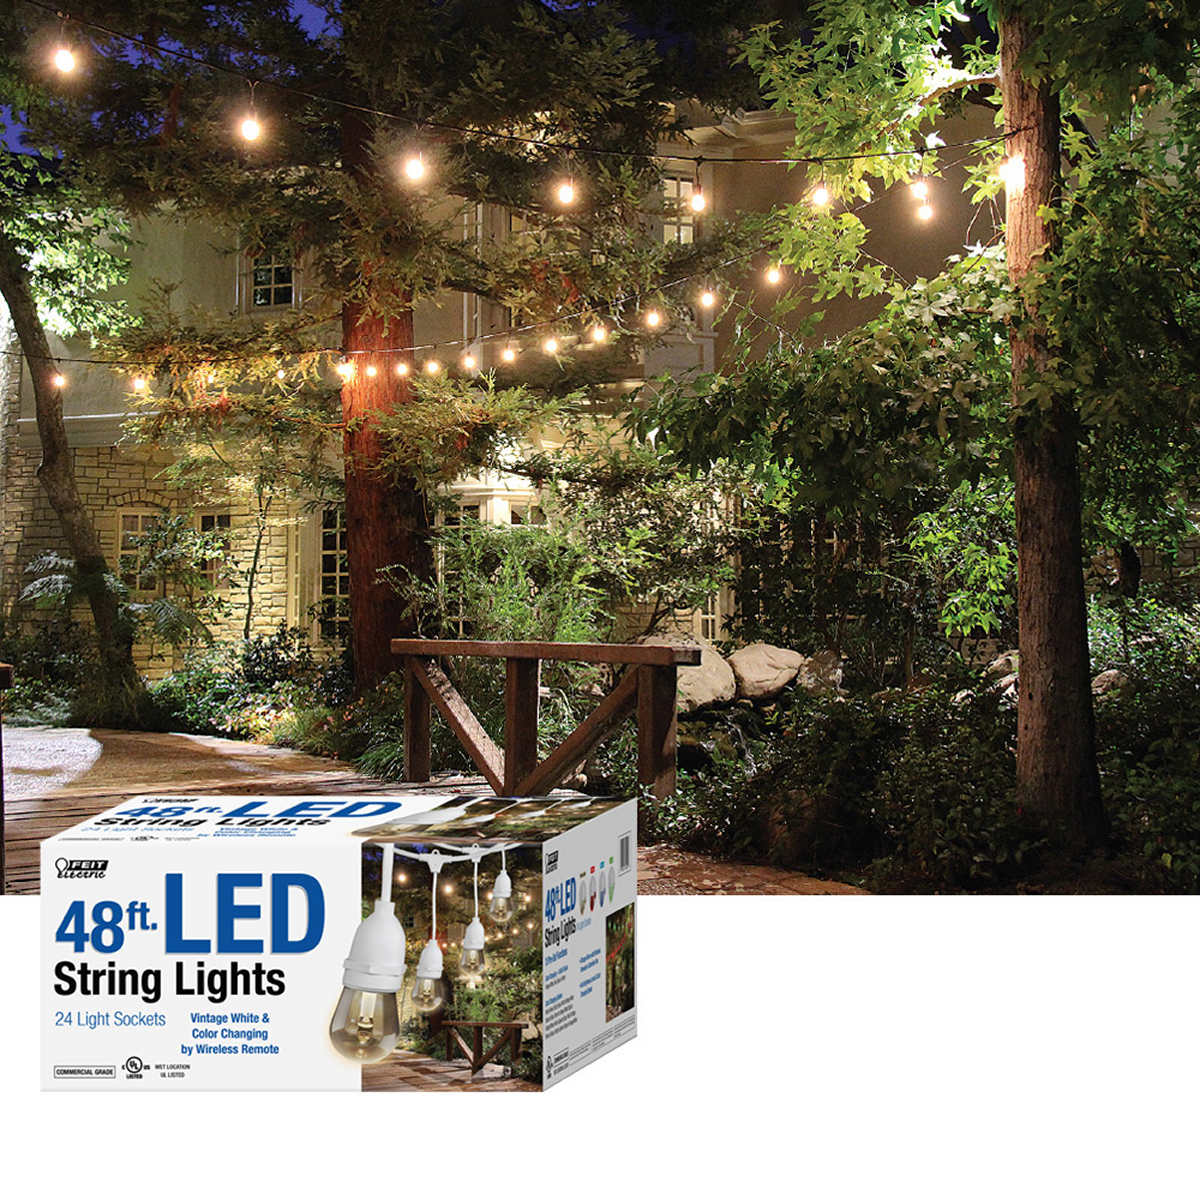 Feit electric outdoor string lights outdoor designs electric outdoor string lights designs aloadofball Images